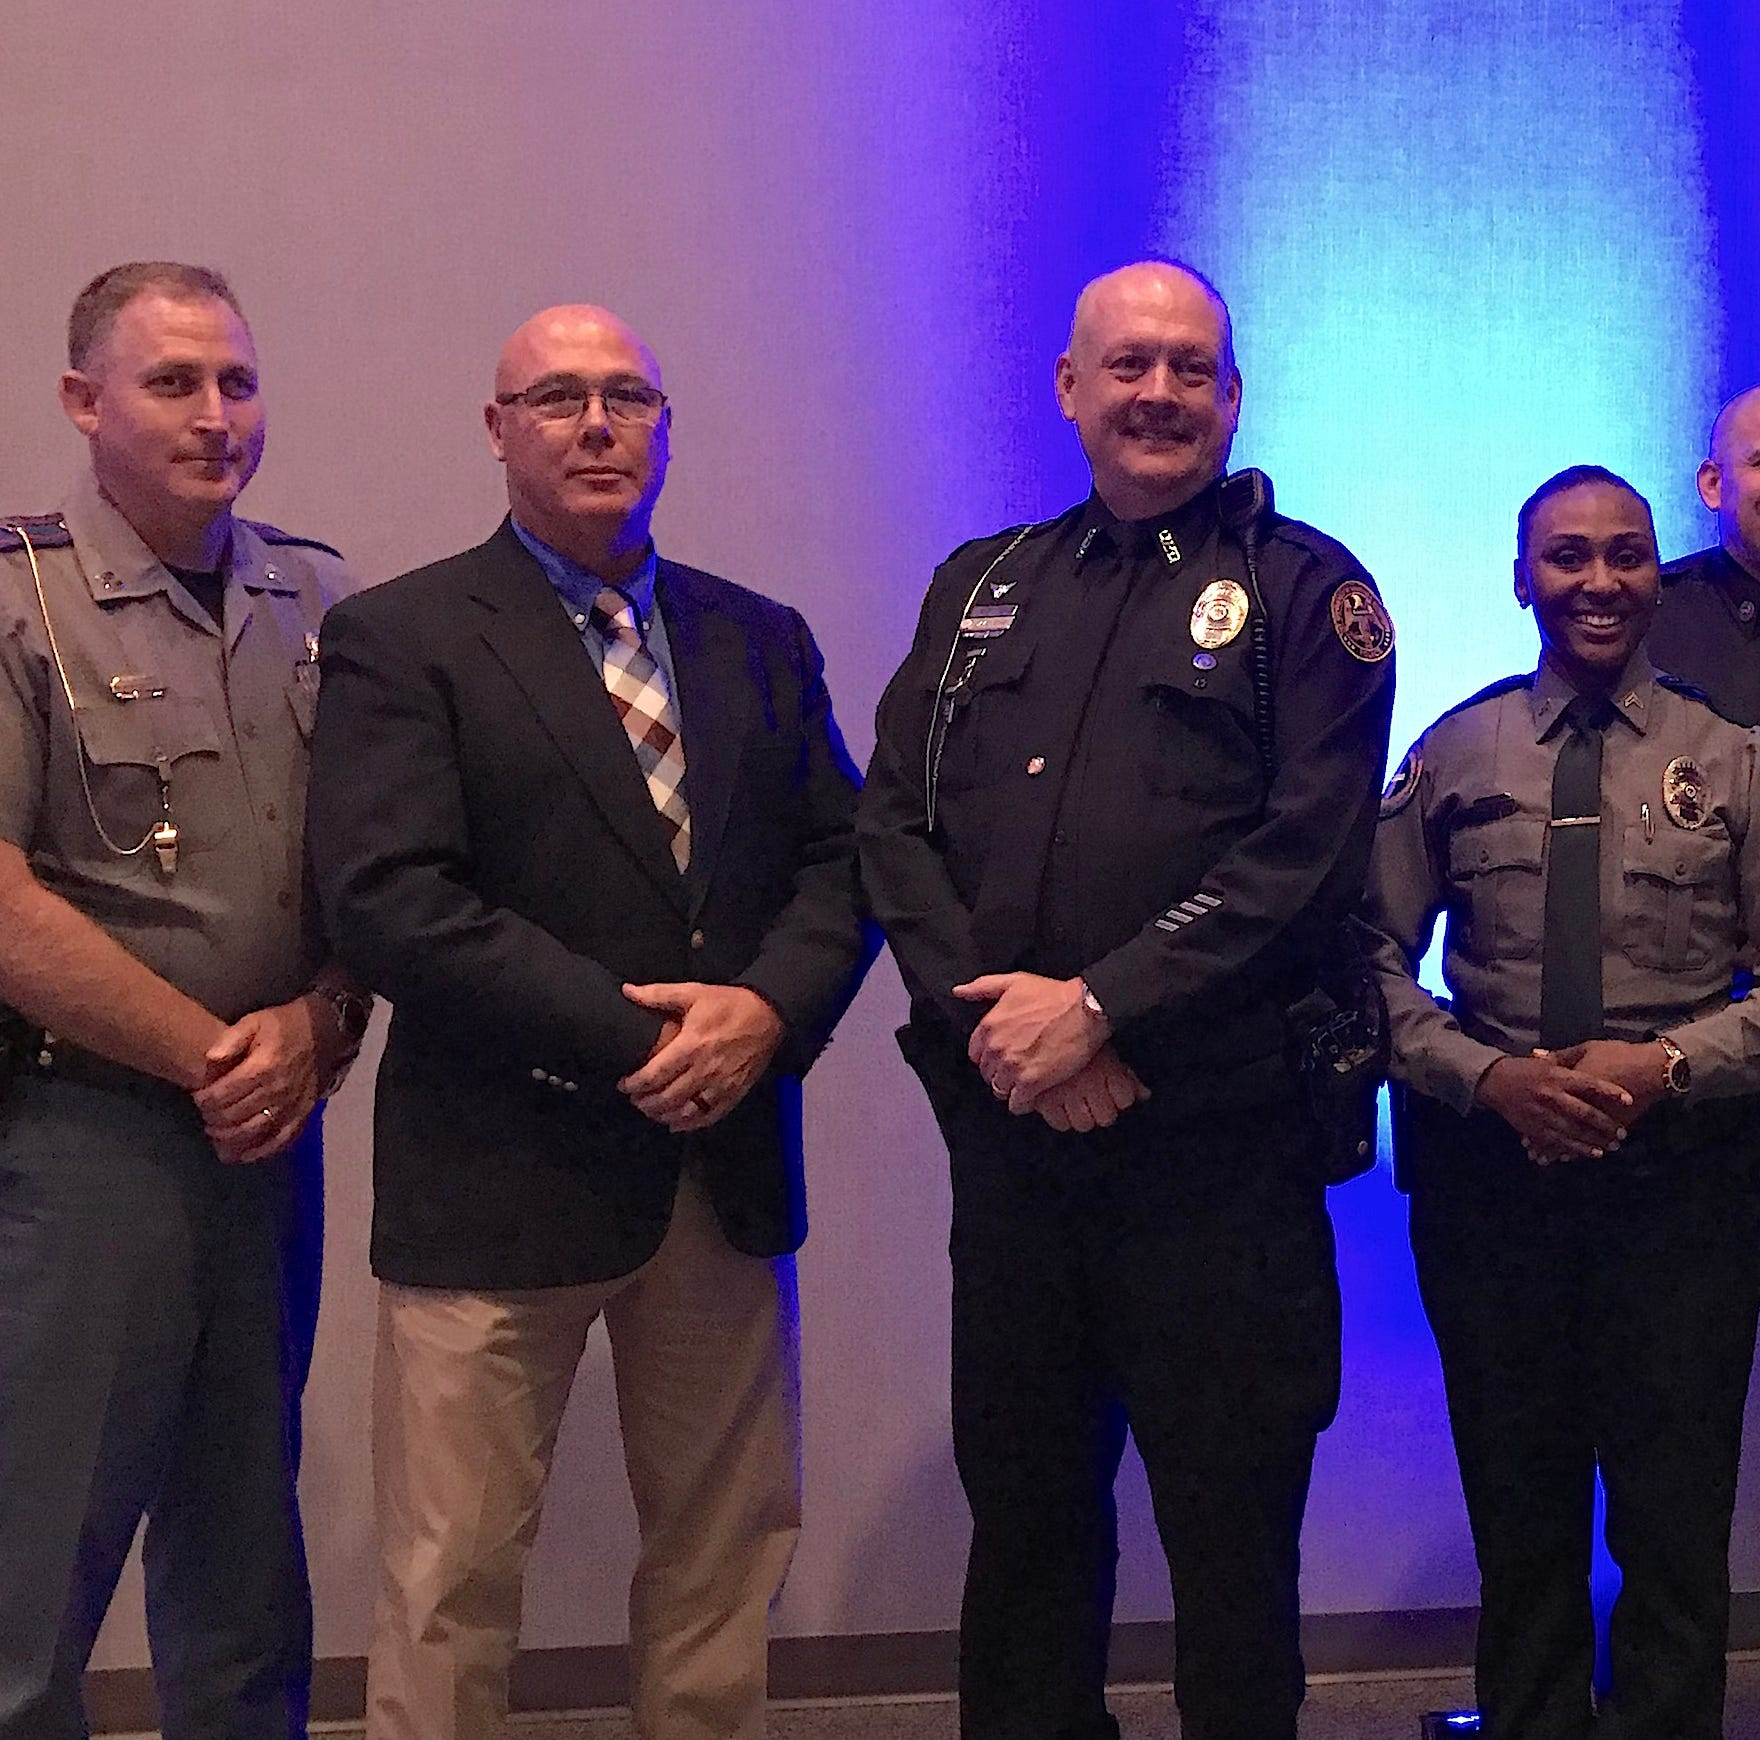 Hattiesburg Hundred honored seven local officers during an appreciation dinner Thursday, May 16, 2019 at Lake Terrace Convention Center. The officers, from left, are Highway Patrol Capt. Ricky Lott; Forrest County Deputy Tim Hartfield; USM police officer David Byrd; Forrest General Hospital police officer Jessica Clark; Hattiesburg firefighter Brian Sheffield; Lamar County investigator Scott Wagner; and Hattiesburg police officer Alex Kitch.